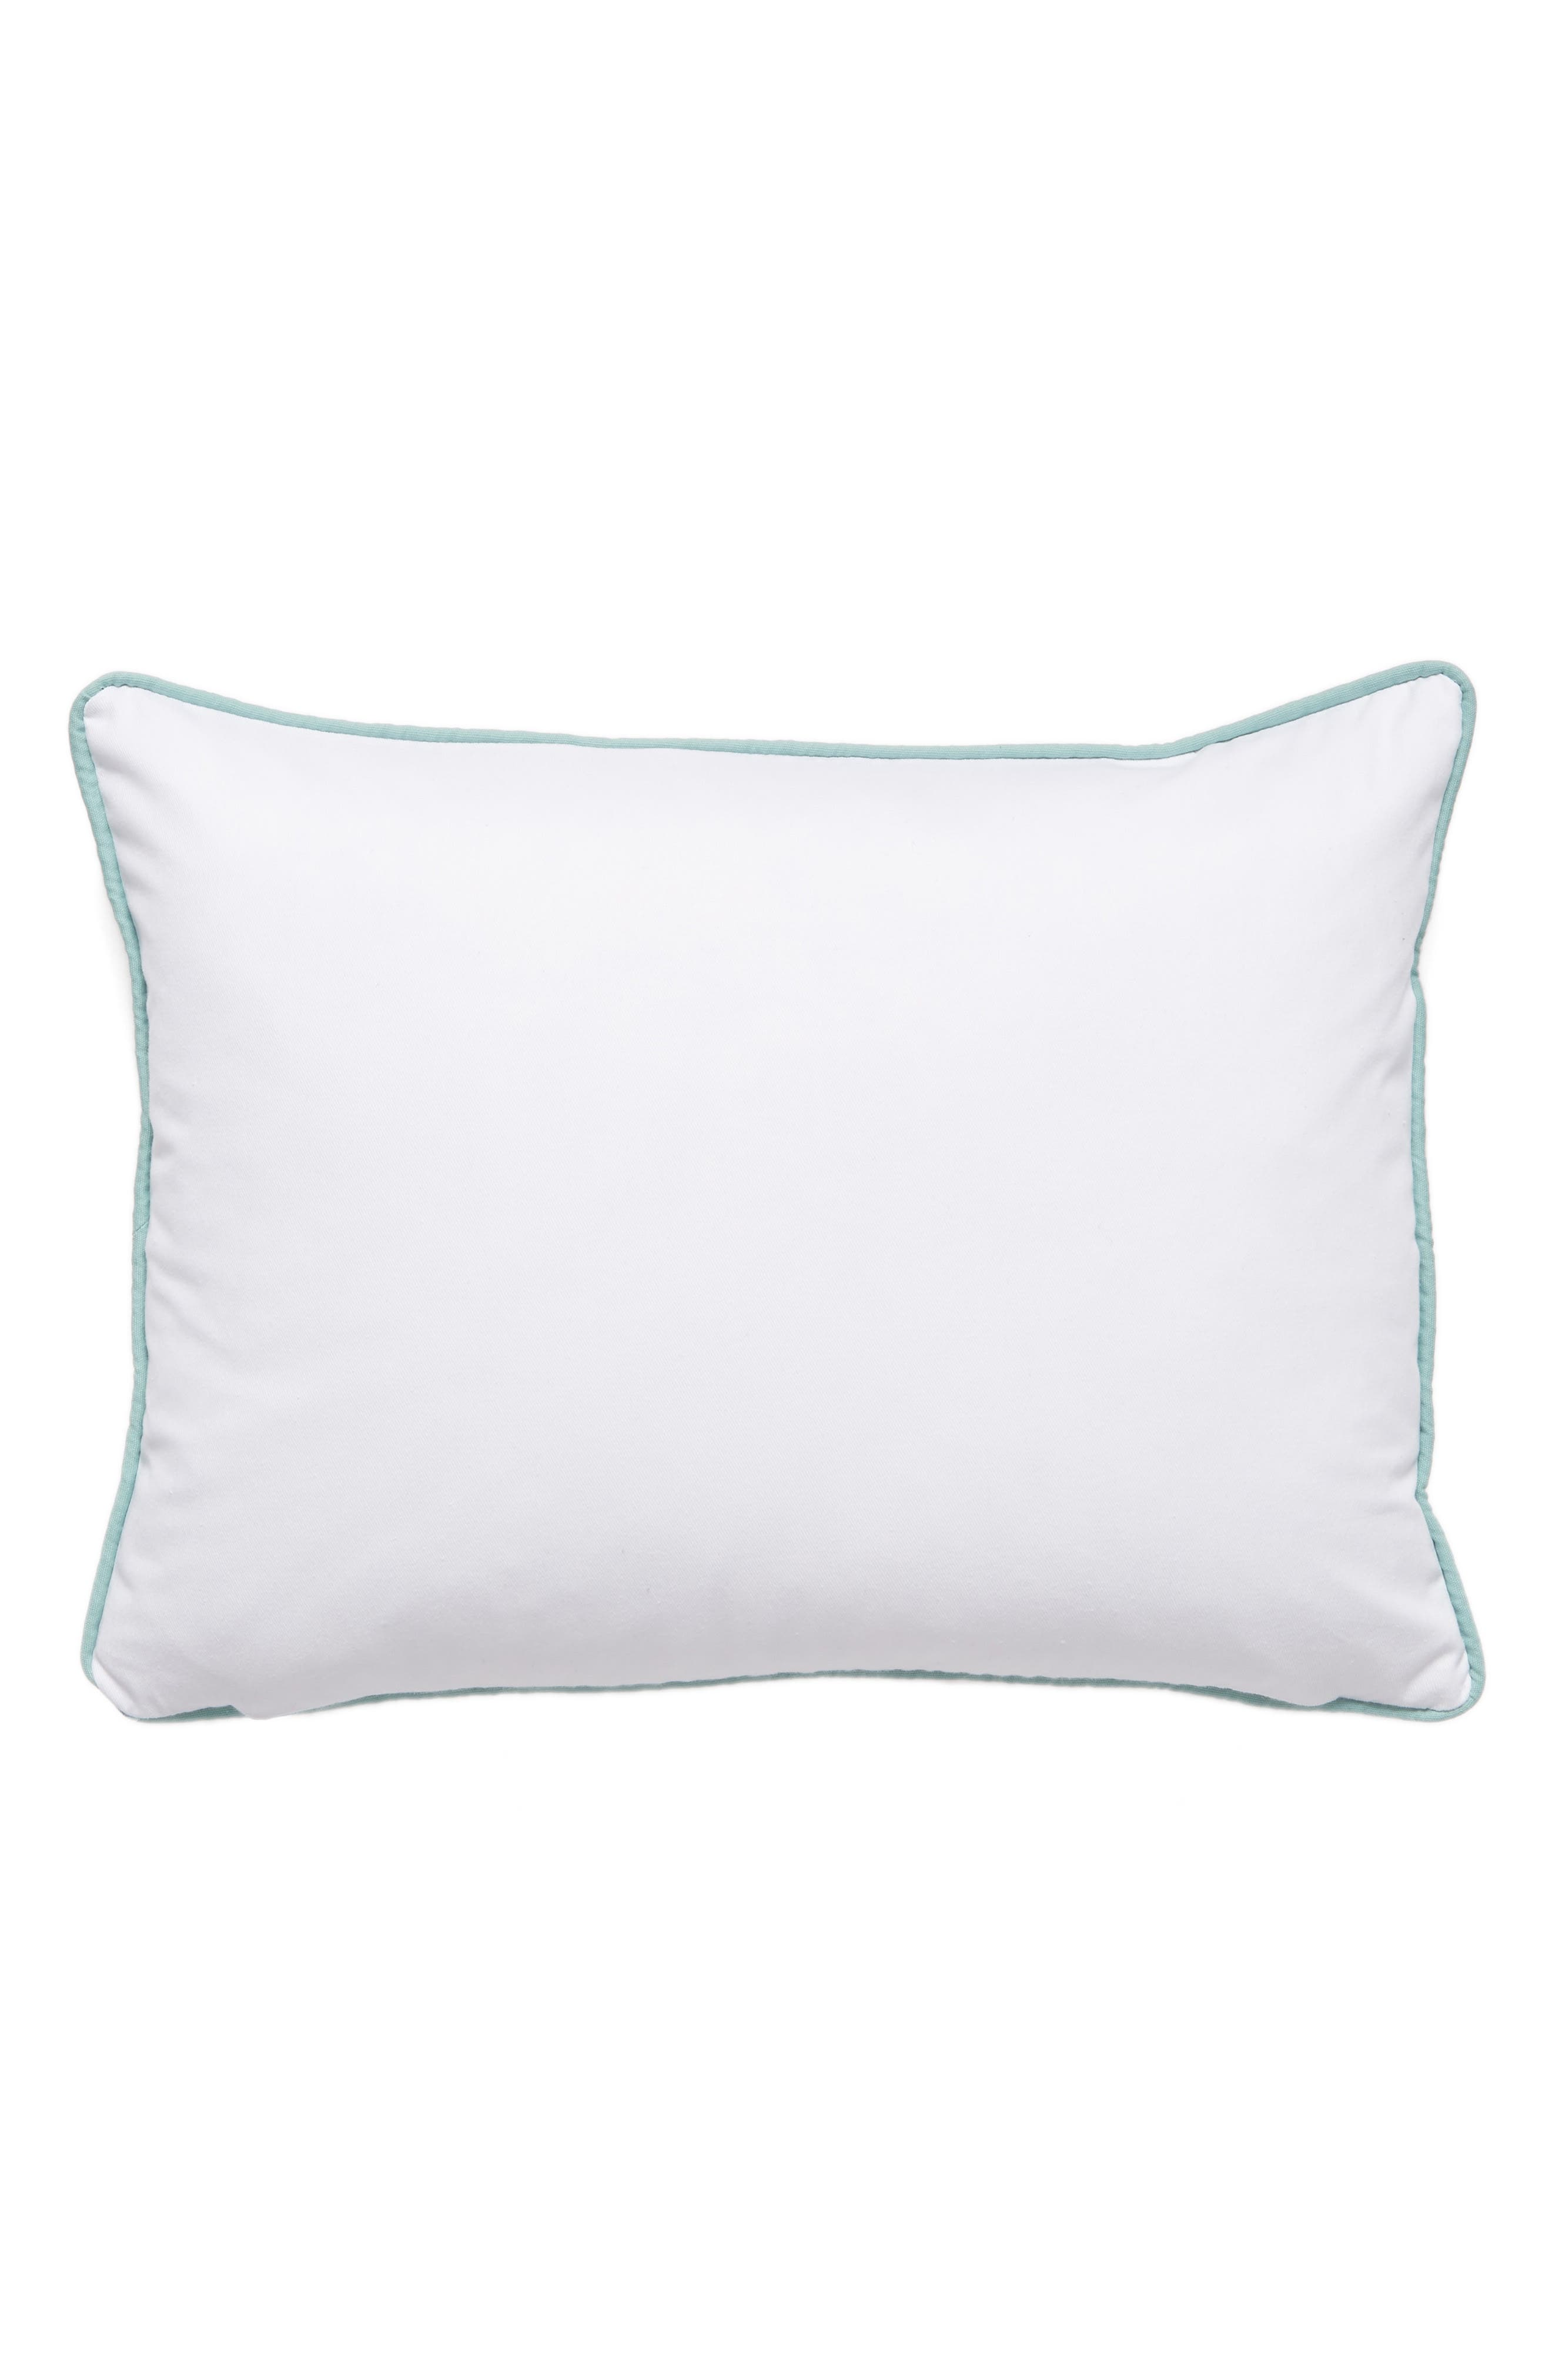 Jordan Embroidered Accent Pillow,                             Alternate thumbnail 2, color,                             900